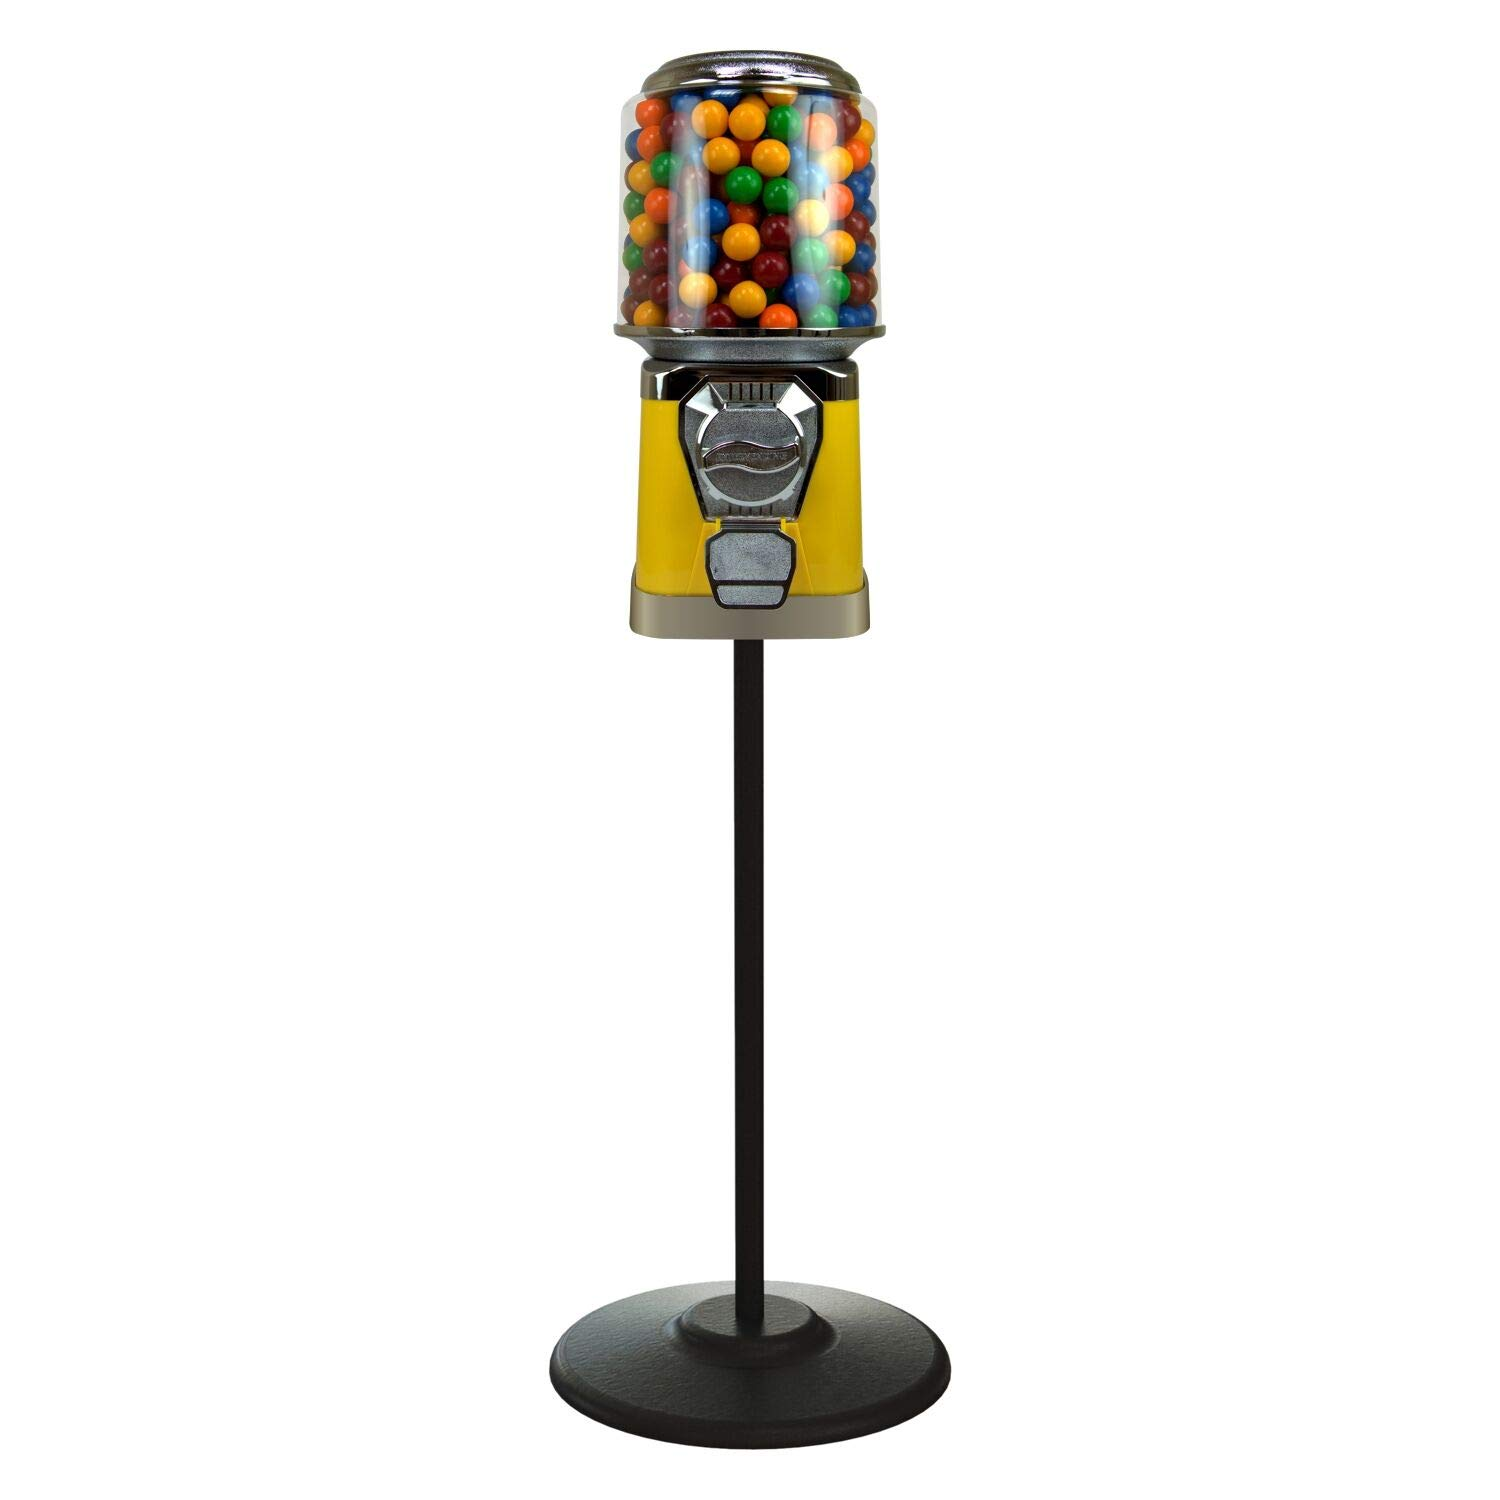 Gumball Max 44% OFF Machine with Stand Virginia Beach Mall - Vending Yellow Bundled Home